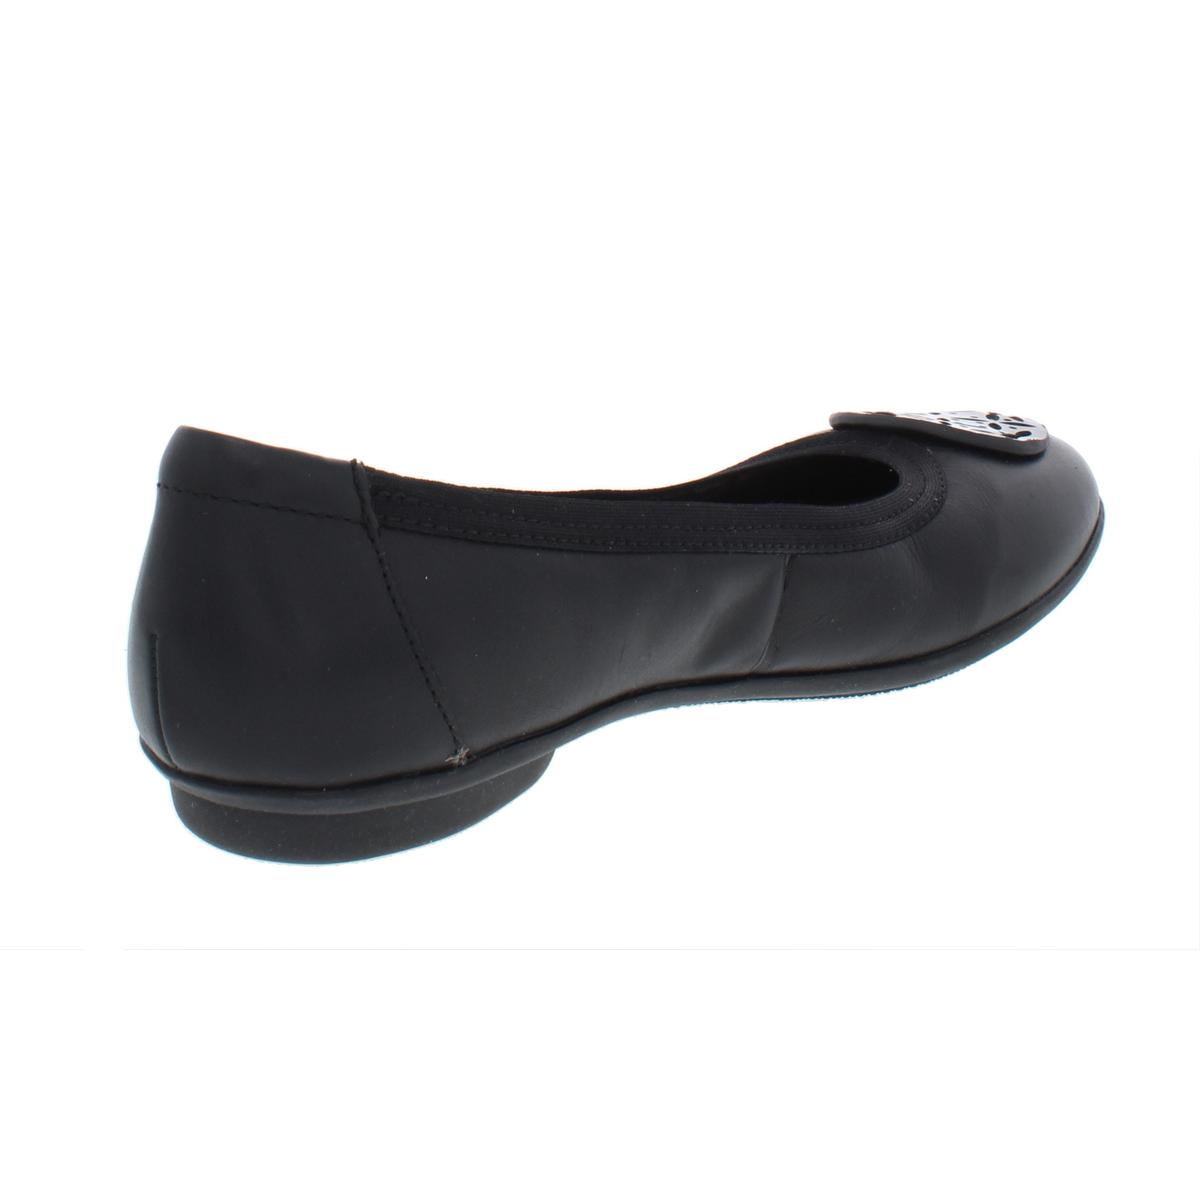 Clarks-Womens-Gracelin-Lola-Leather-Slip-On-Ballet-Flats-Shoes-BHFO-5342 thumbnail 4